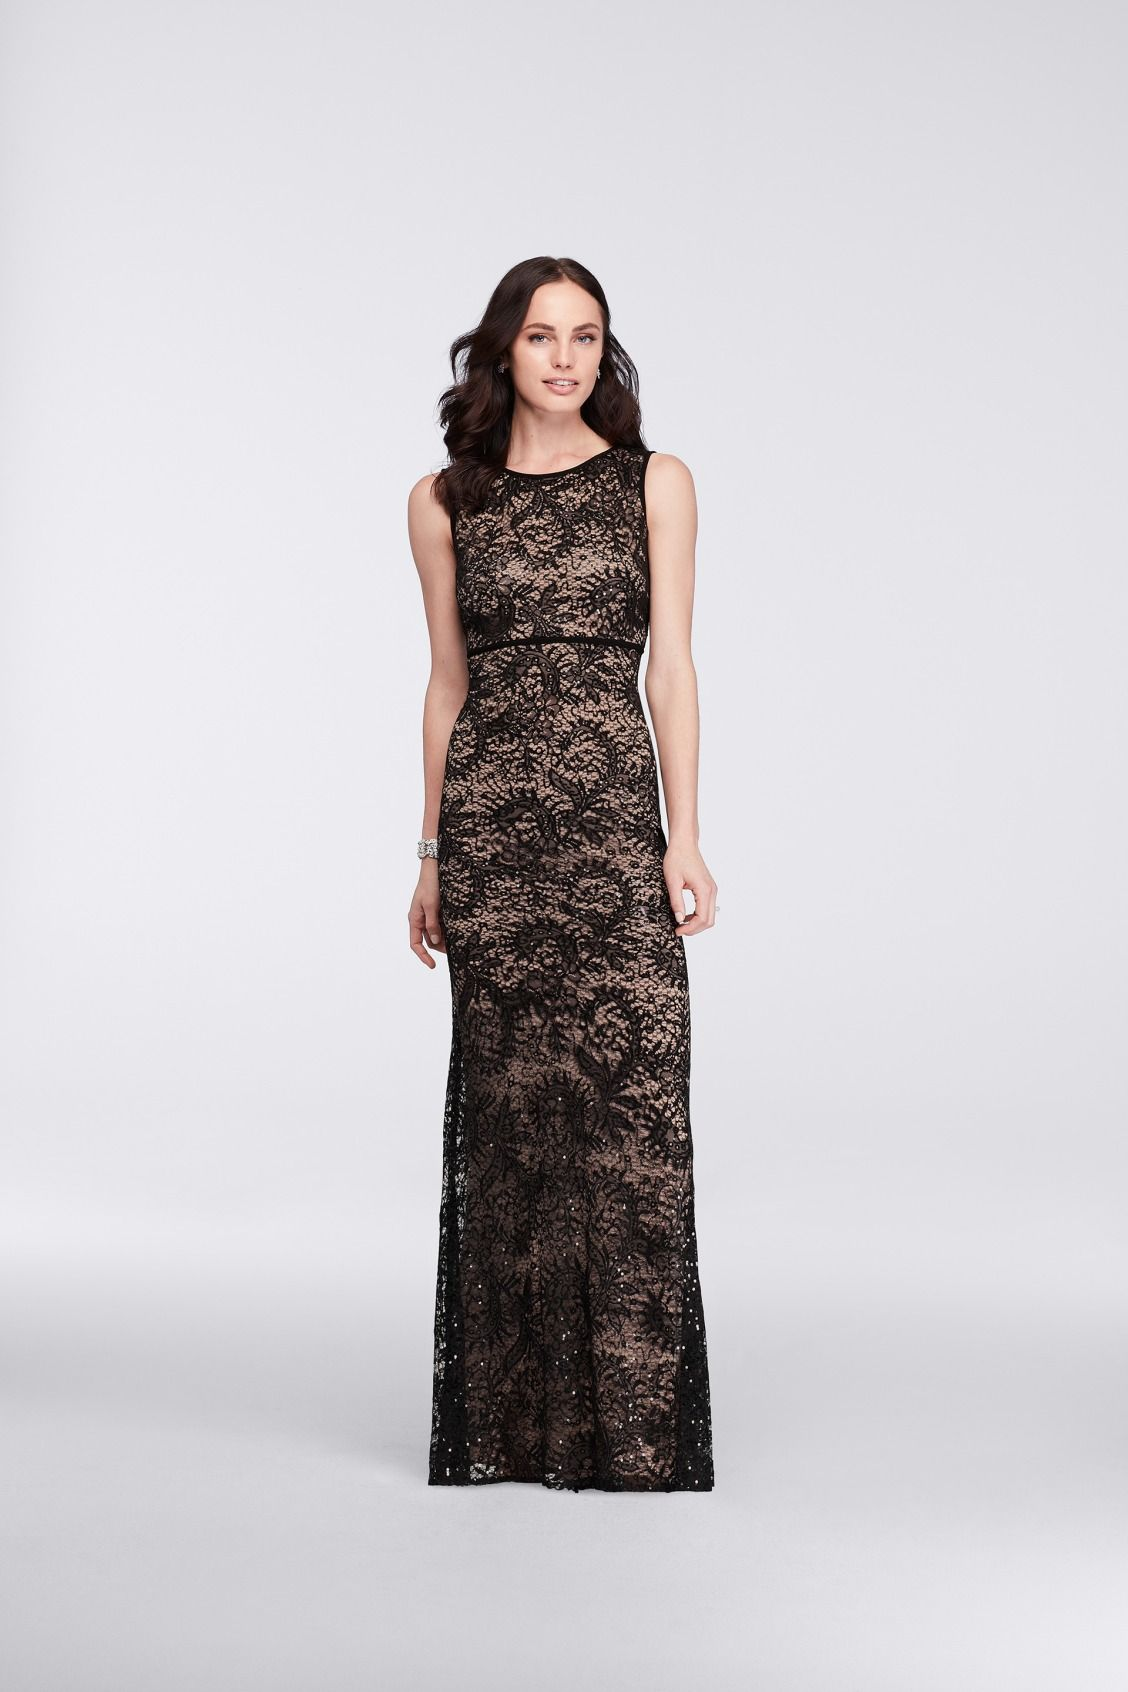 5c8953c61eb This chic black and nude mother of the bride dress features all over  sequins for some sparkle. Shop this mother of the bride dress by Nightway  at David s ...